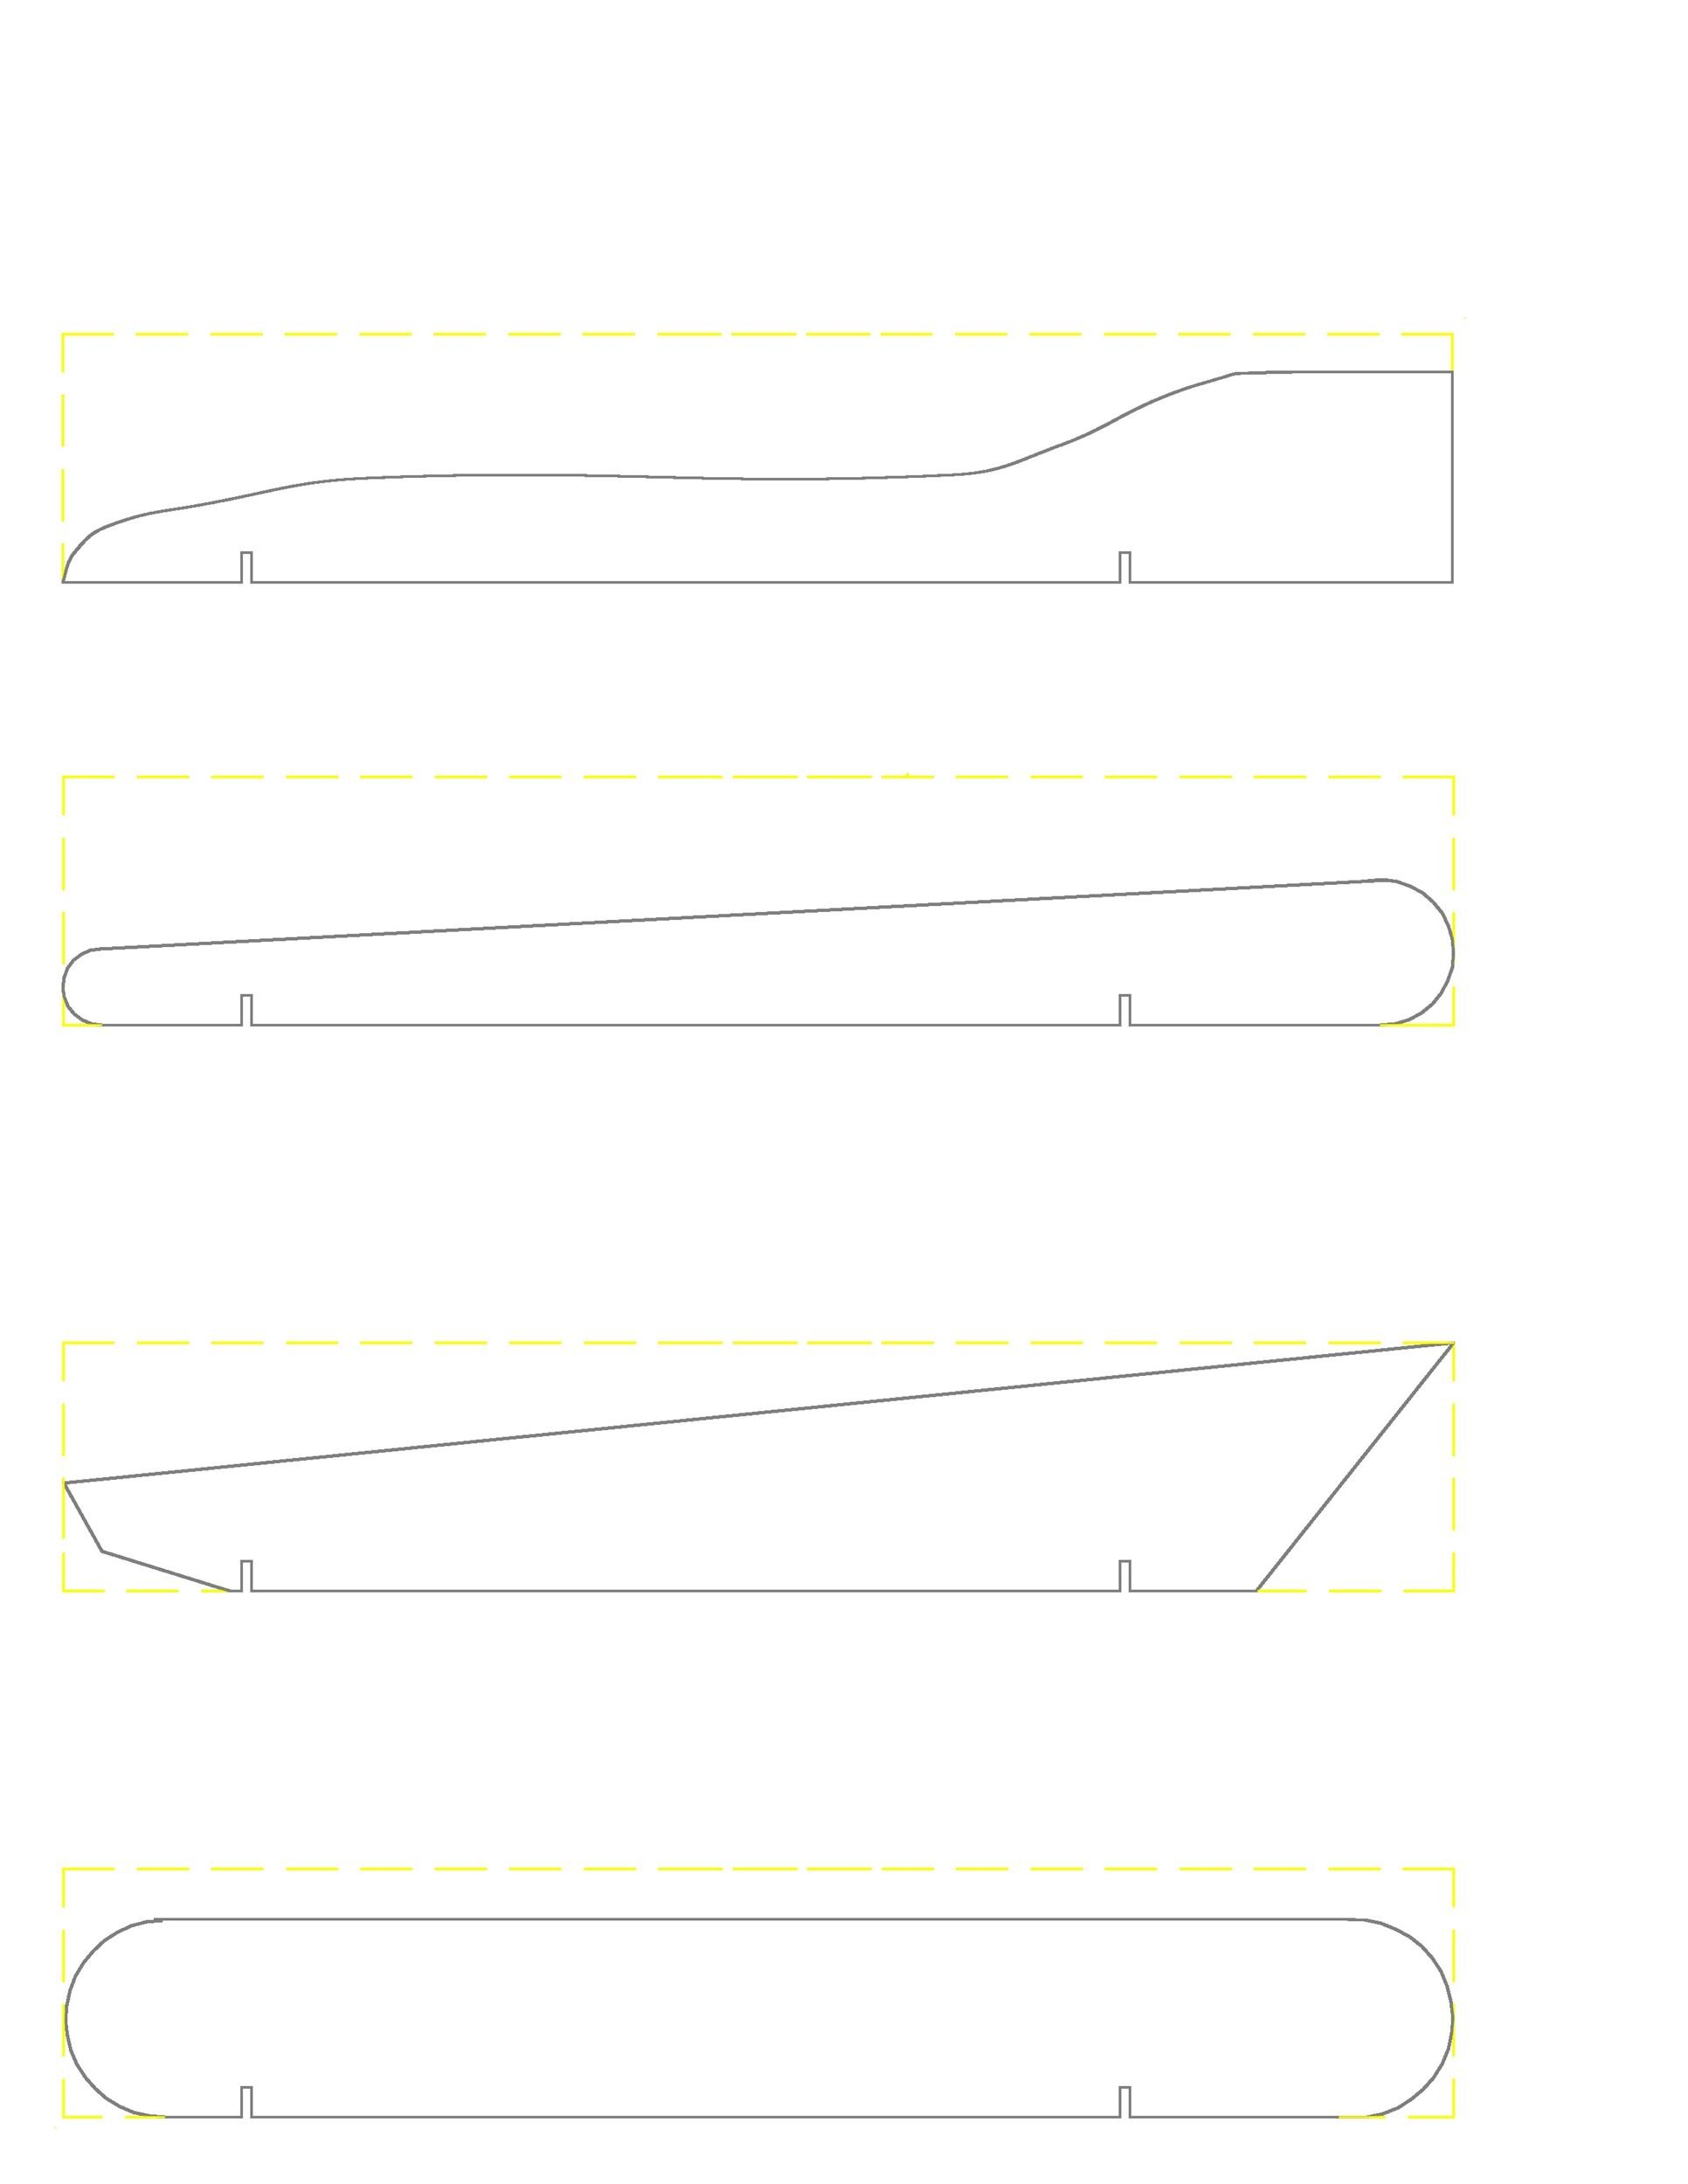 image about Free Pinewood Derby Templates Printable named 39 Remarkable Pinewood Derby Vehicle Programs Templates ᐅ